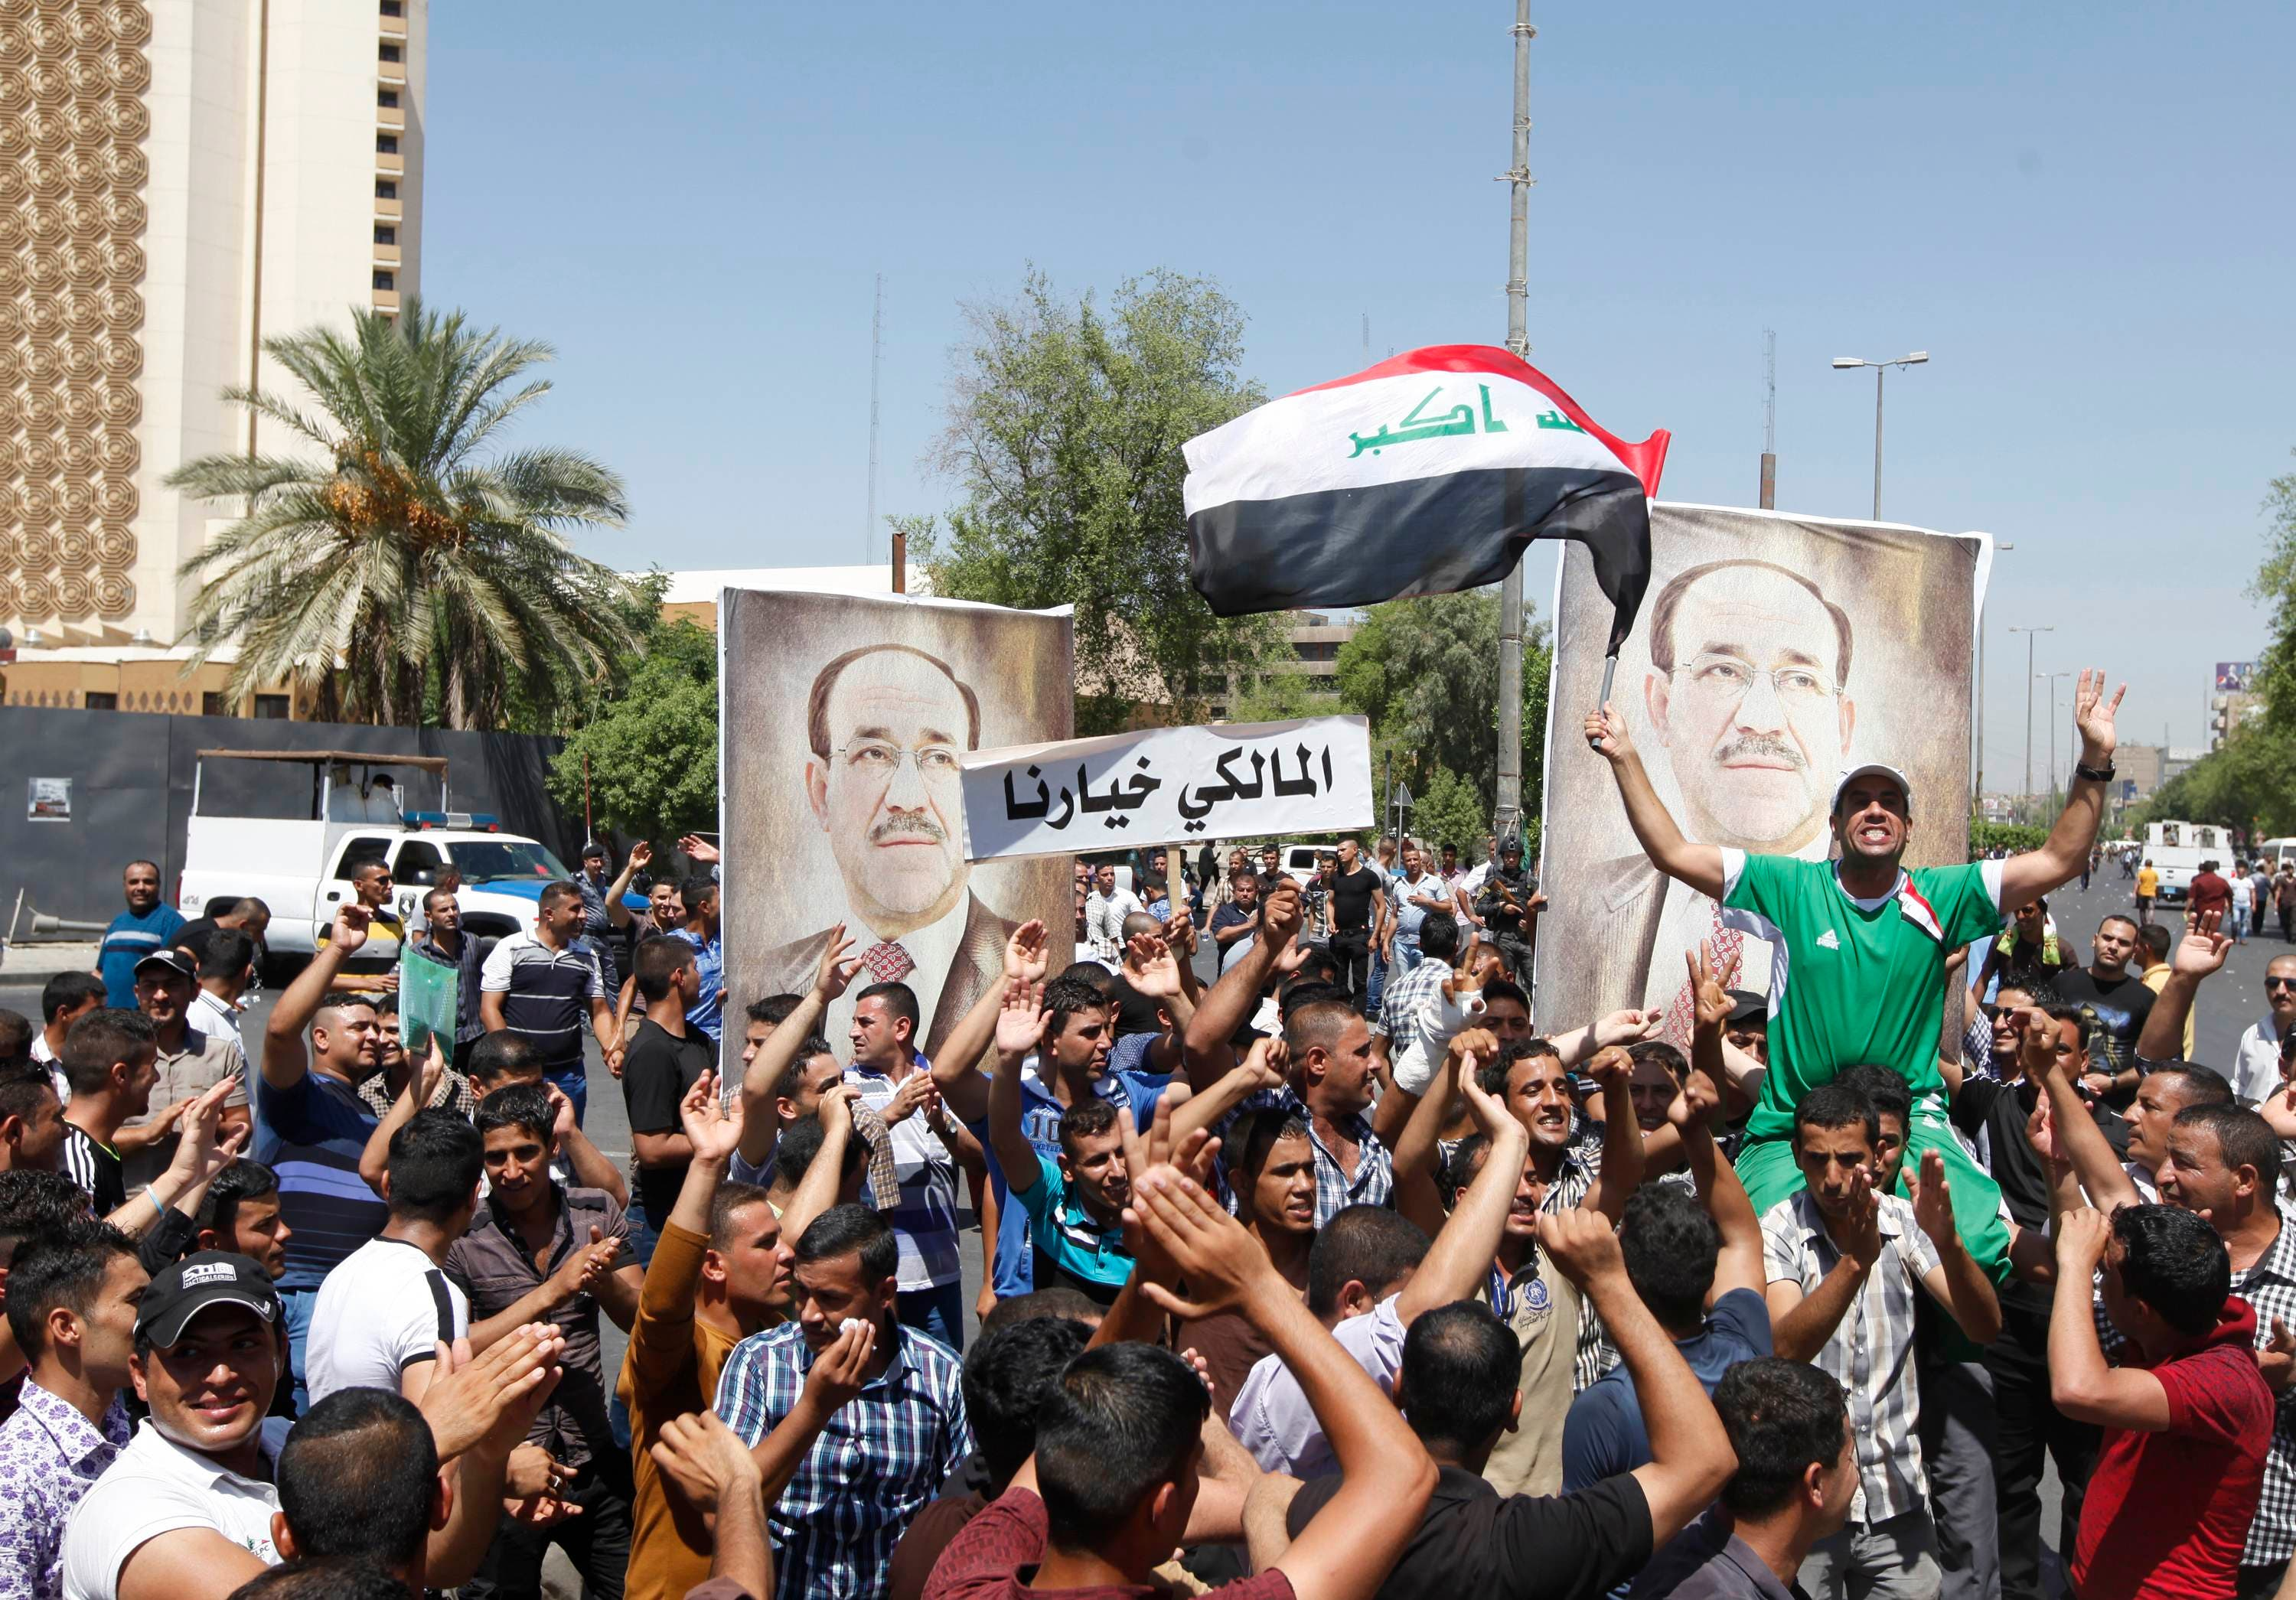 People with portraits of Iraqi Prime Minister Nouri al-Maliki gather at a rally in support of him in Baghdad August 11, 2014. (Reuters)